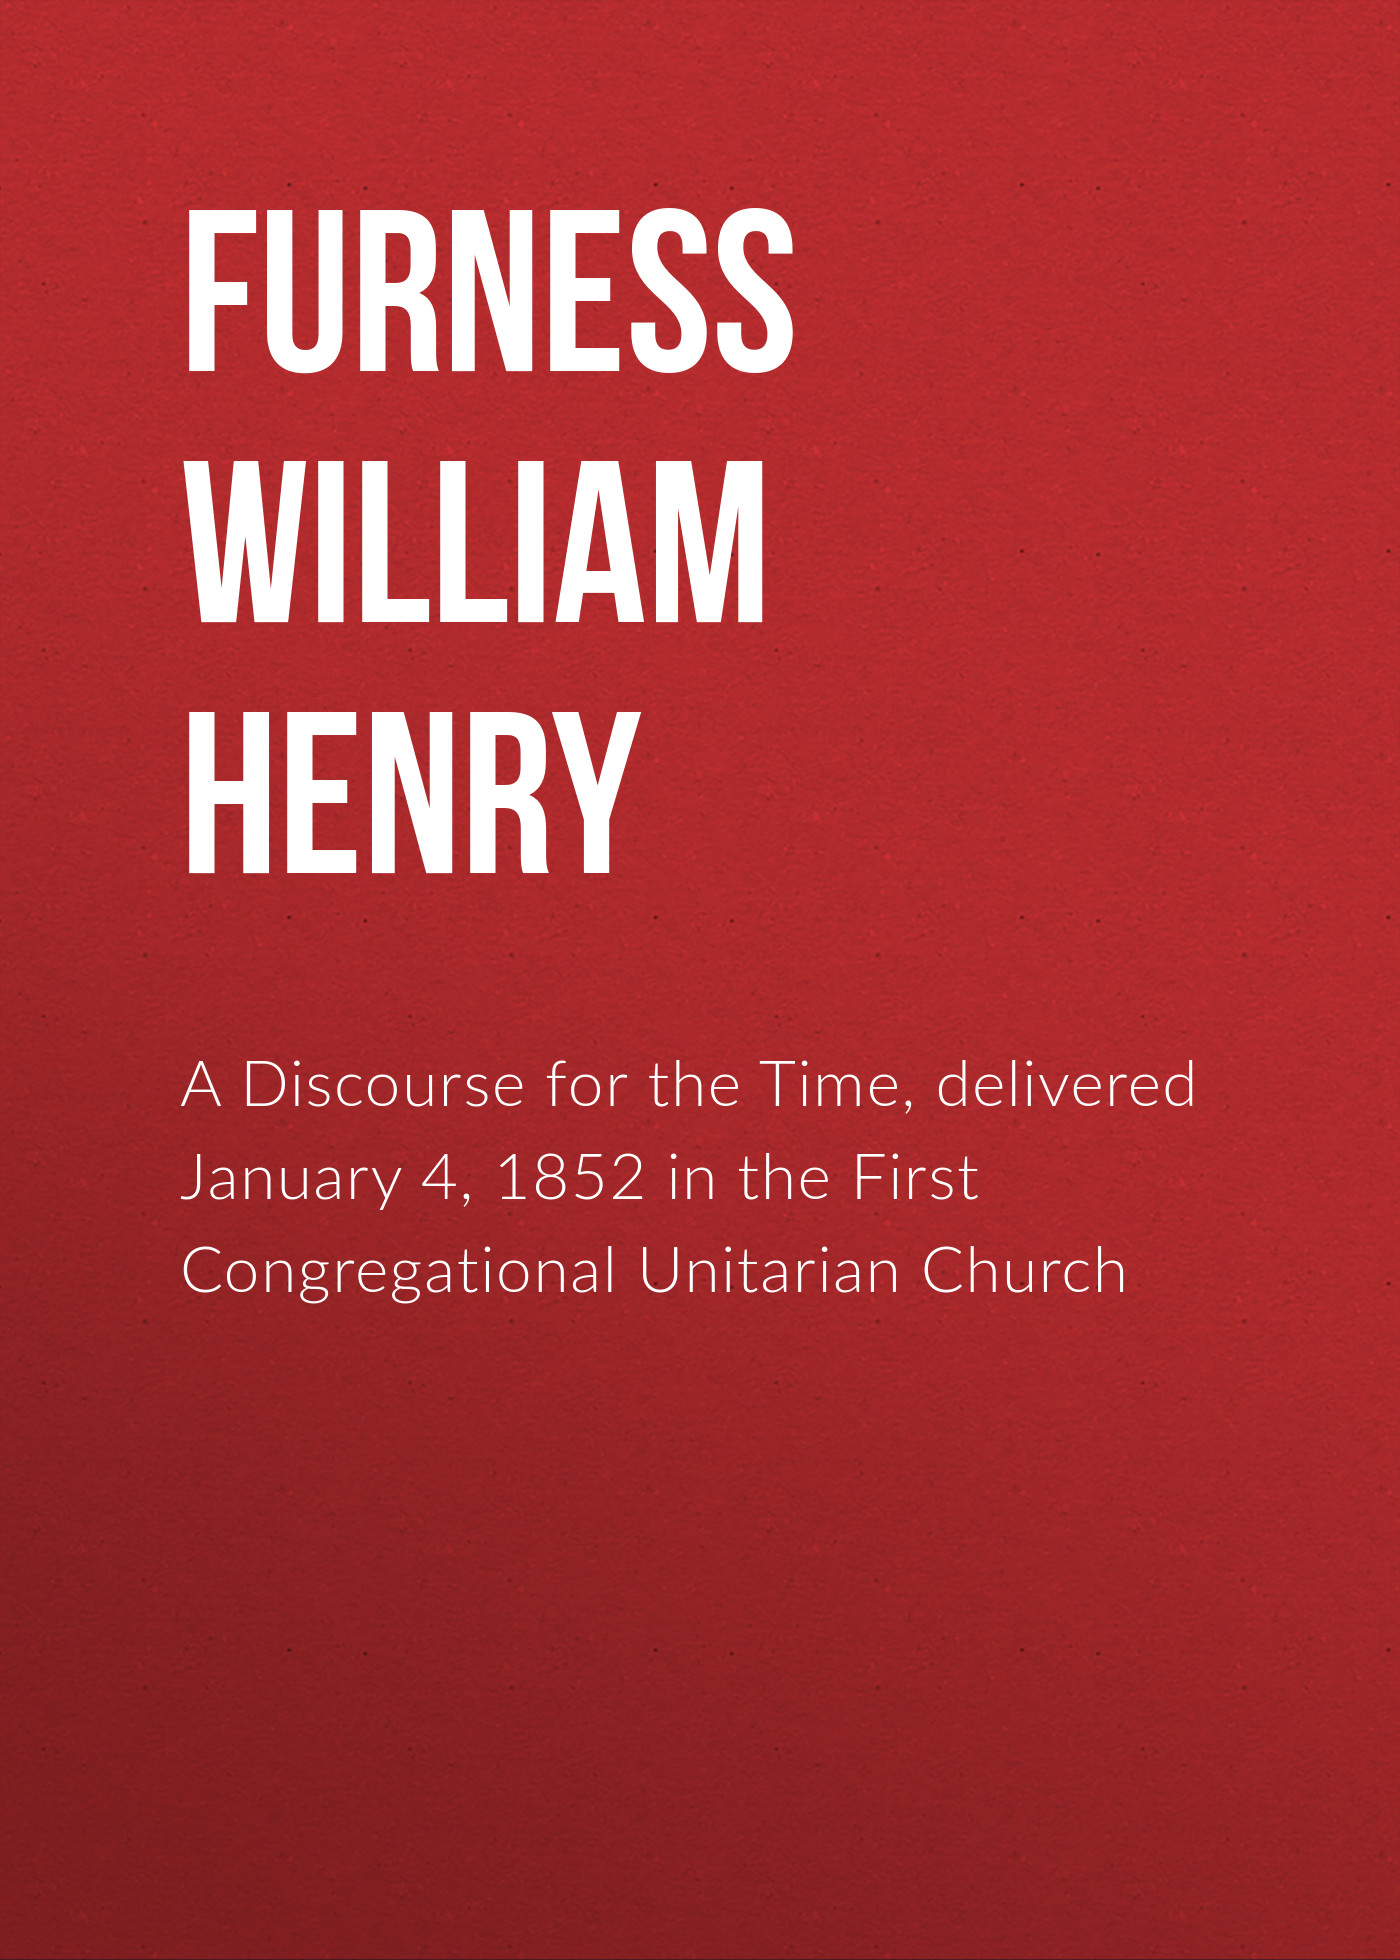 Furness William Henry A Discourse for the Time, delivered January 4, 1852 in the First Congregational Unitarian Church умберто эко роль читателя исследования по семиотике текста